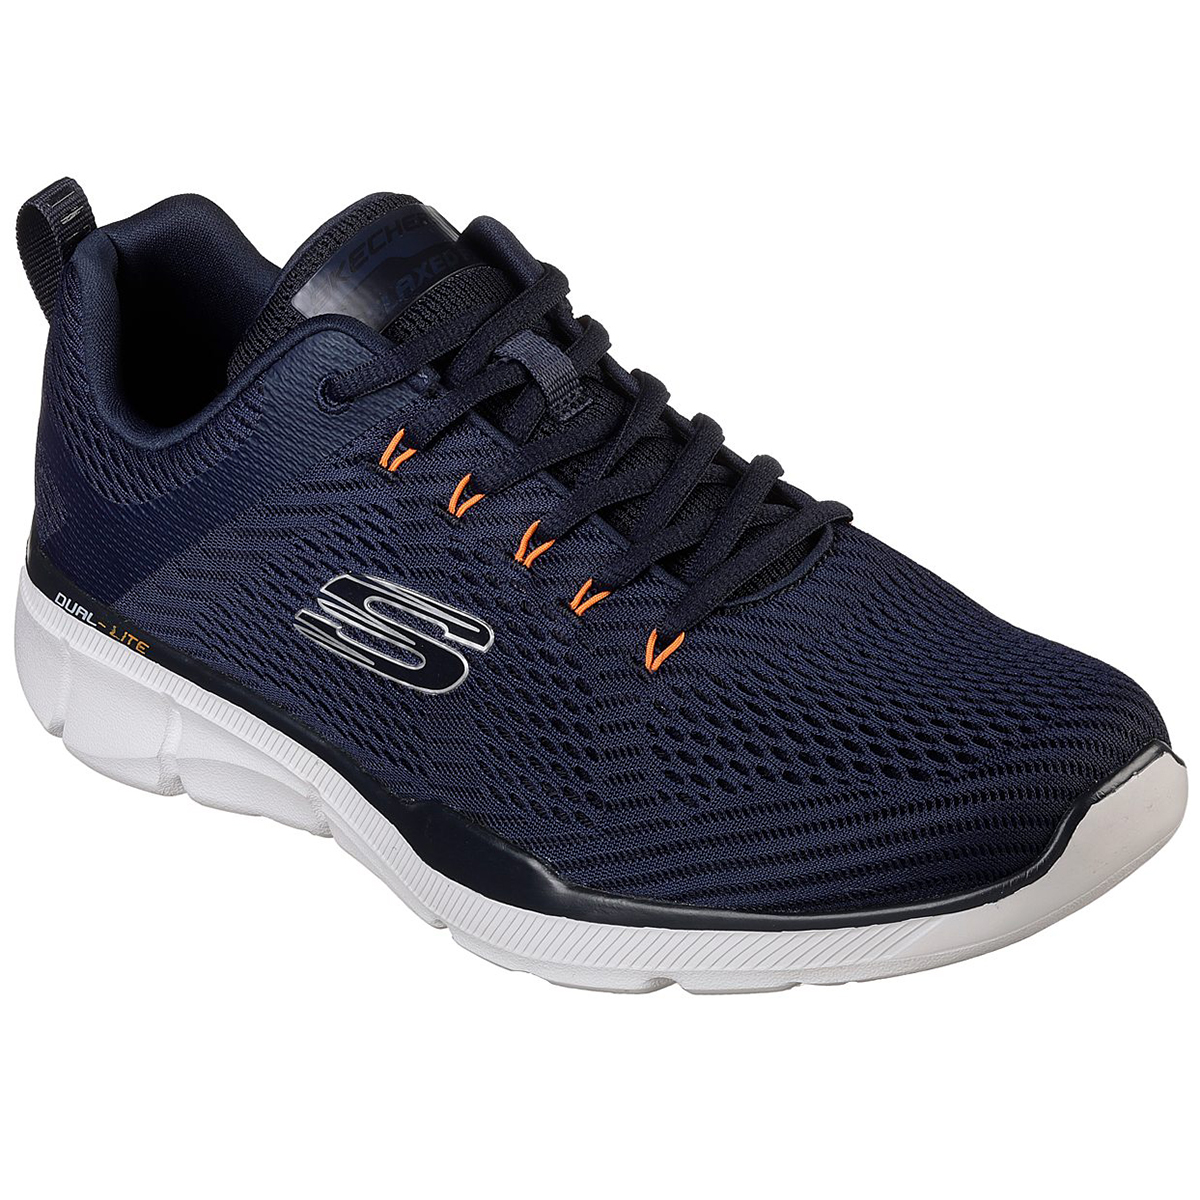 Skechers Men's Relaxed Fit: Equalizer 3.0 Sneakers, Extra Wide - Blue, 12